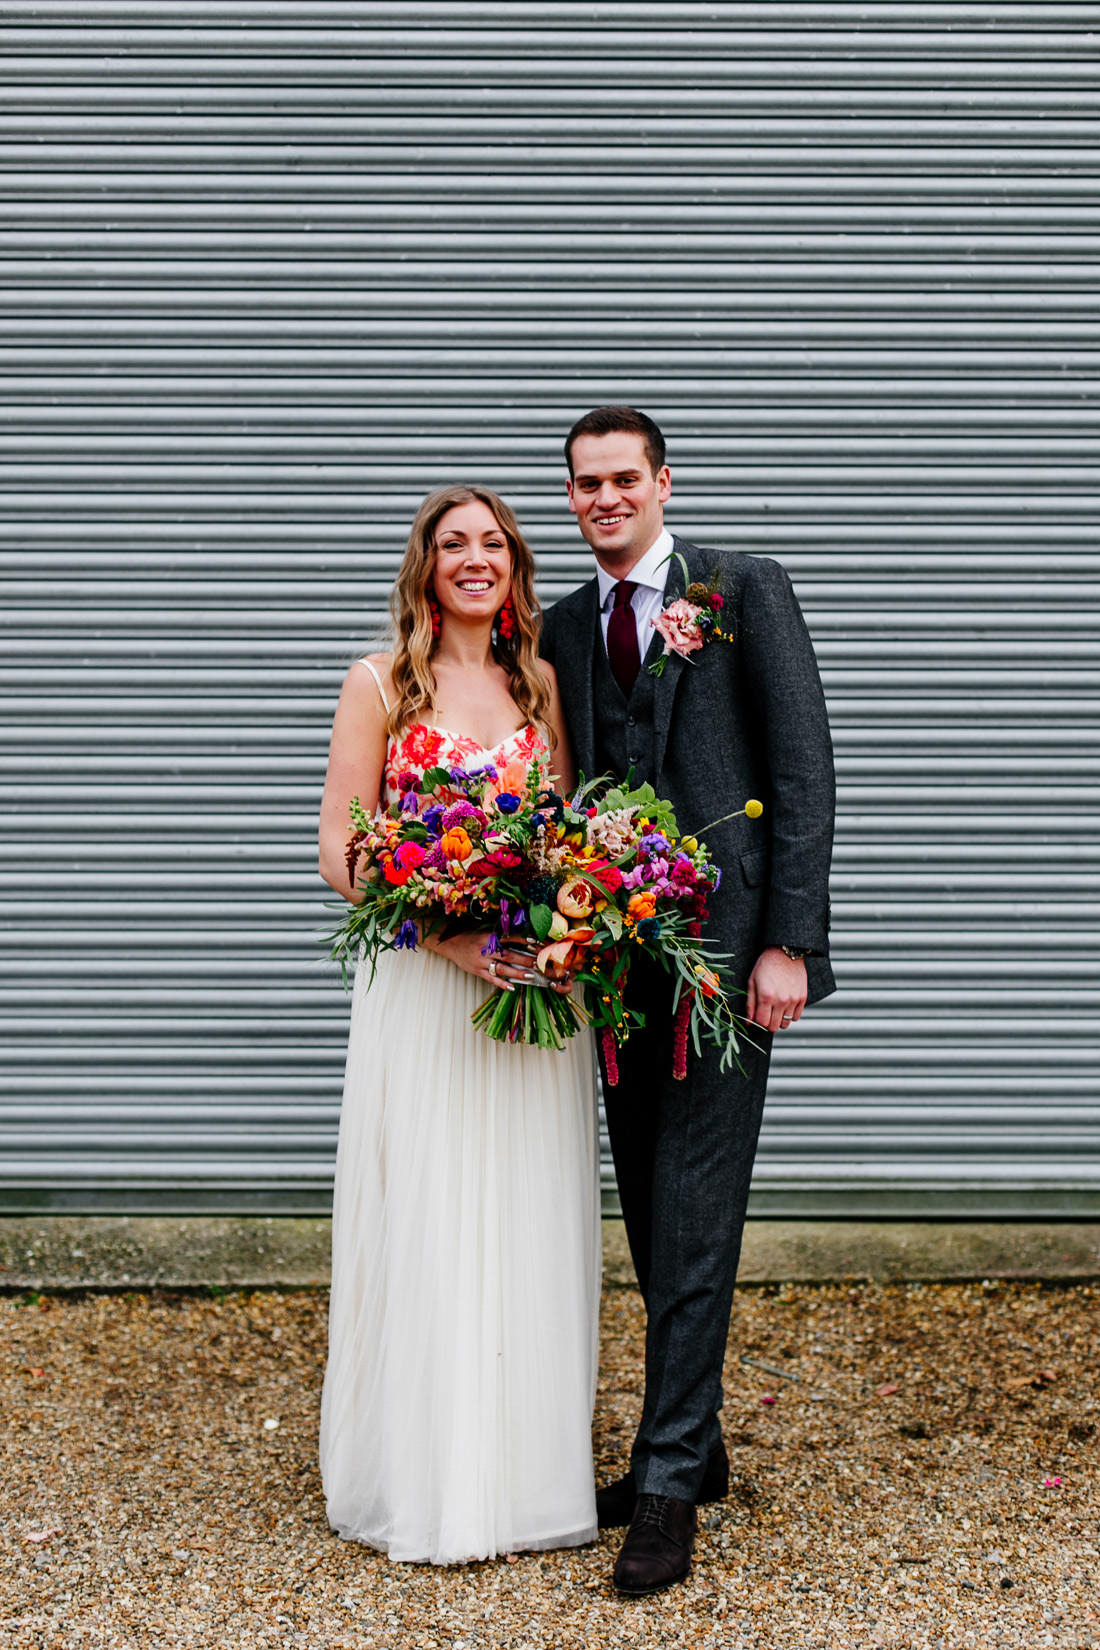 colourful-quirky-upwaltham-barns-sussex-wedding-photographer-Epic-Love-Story-117